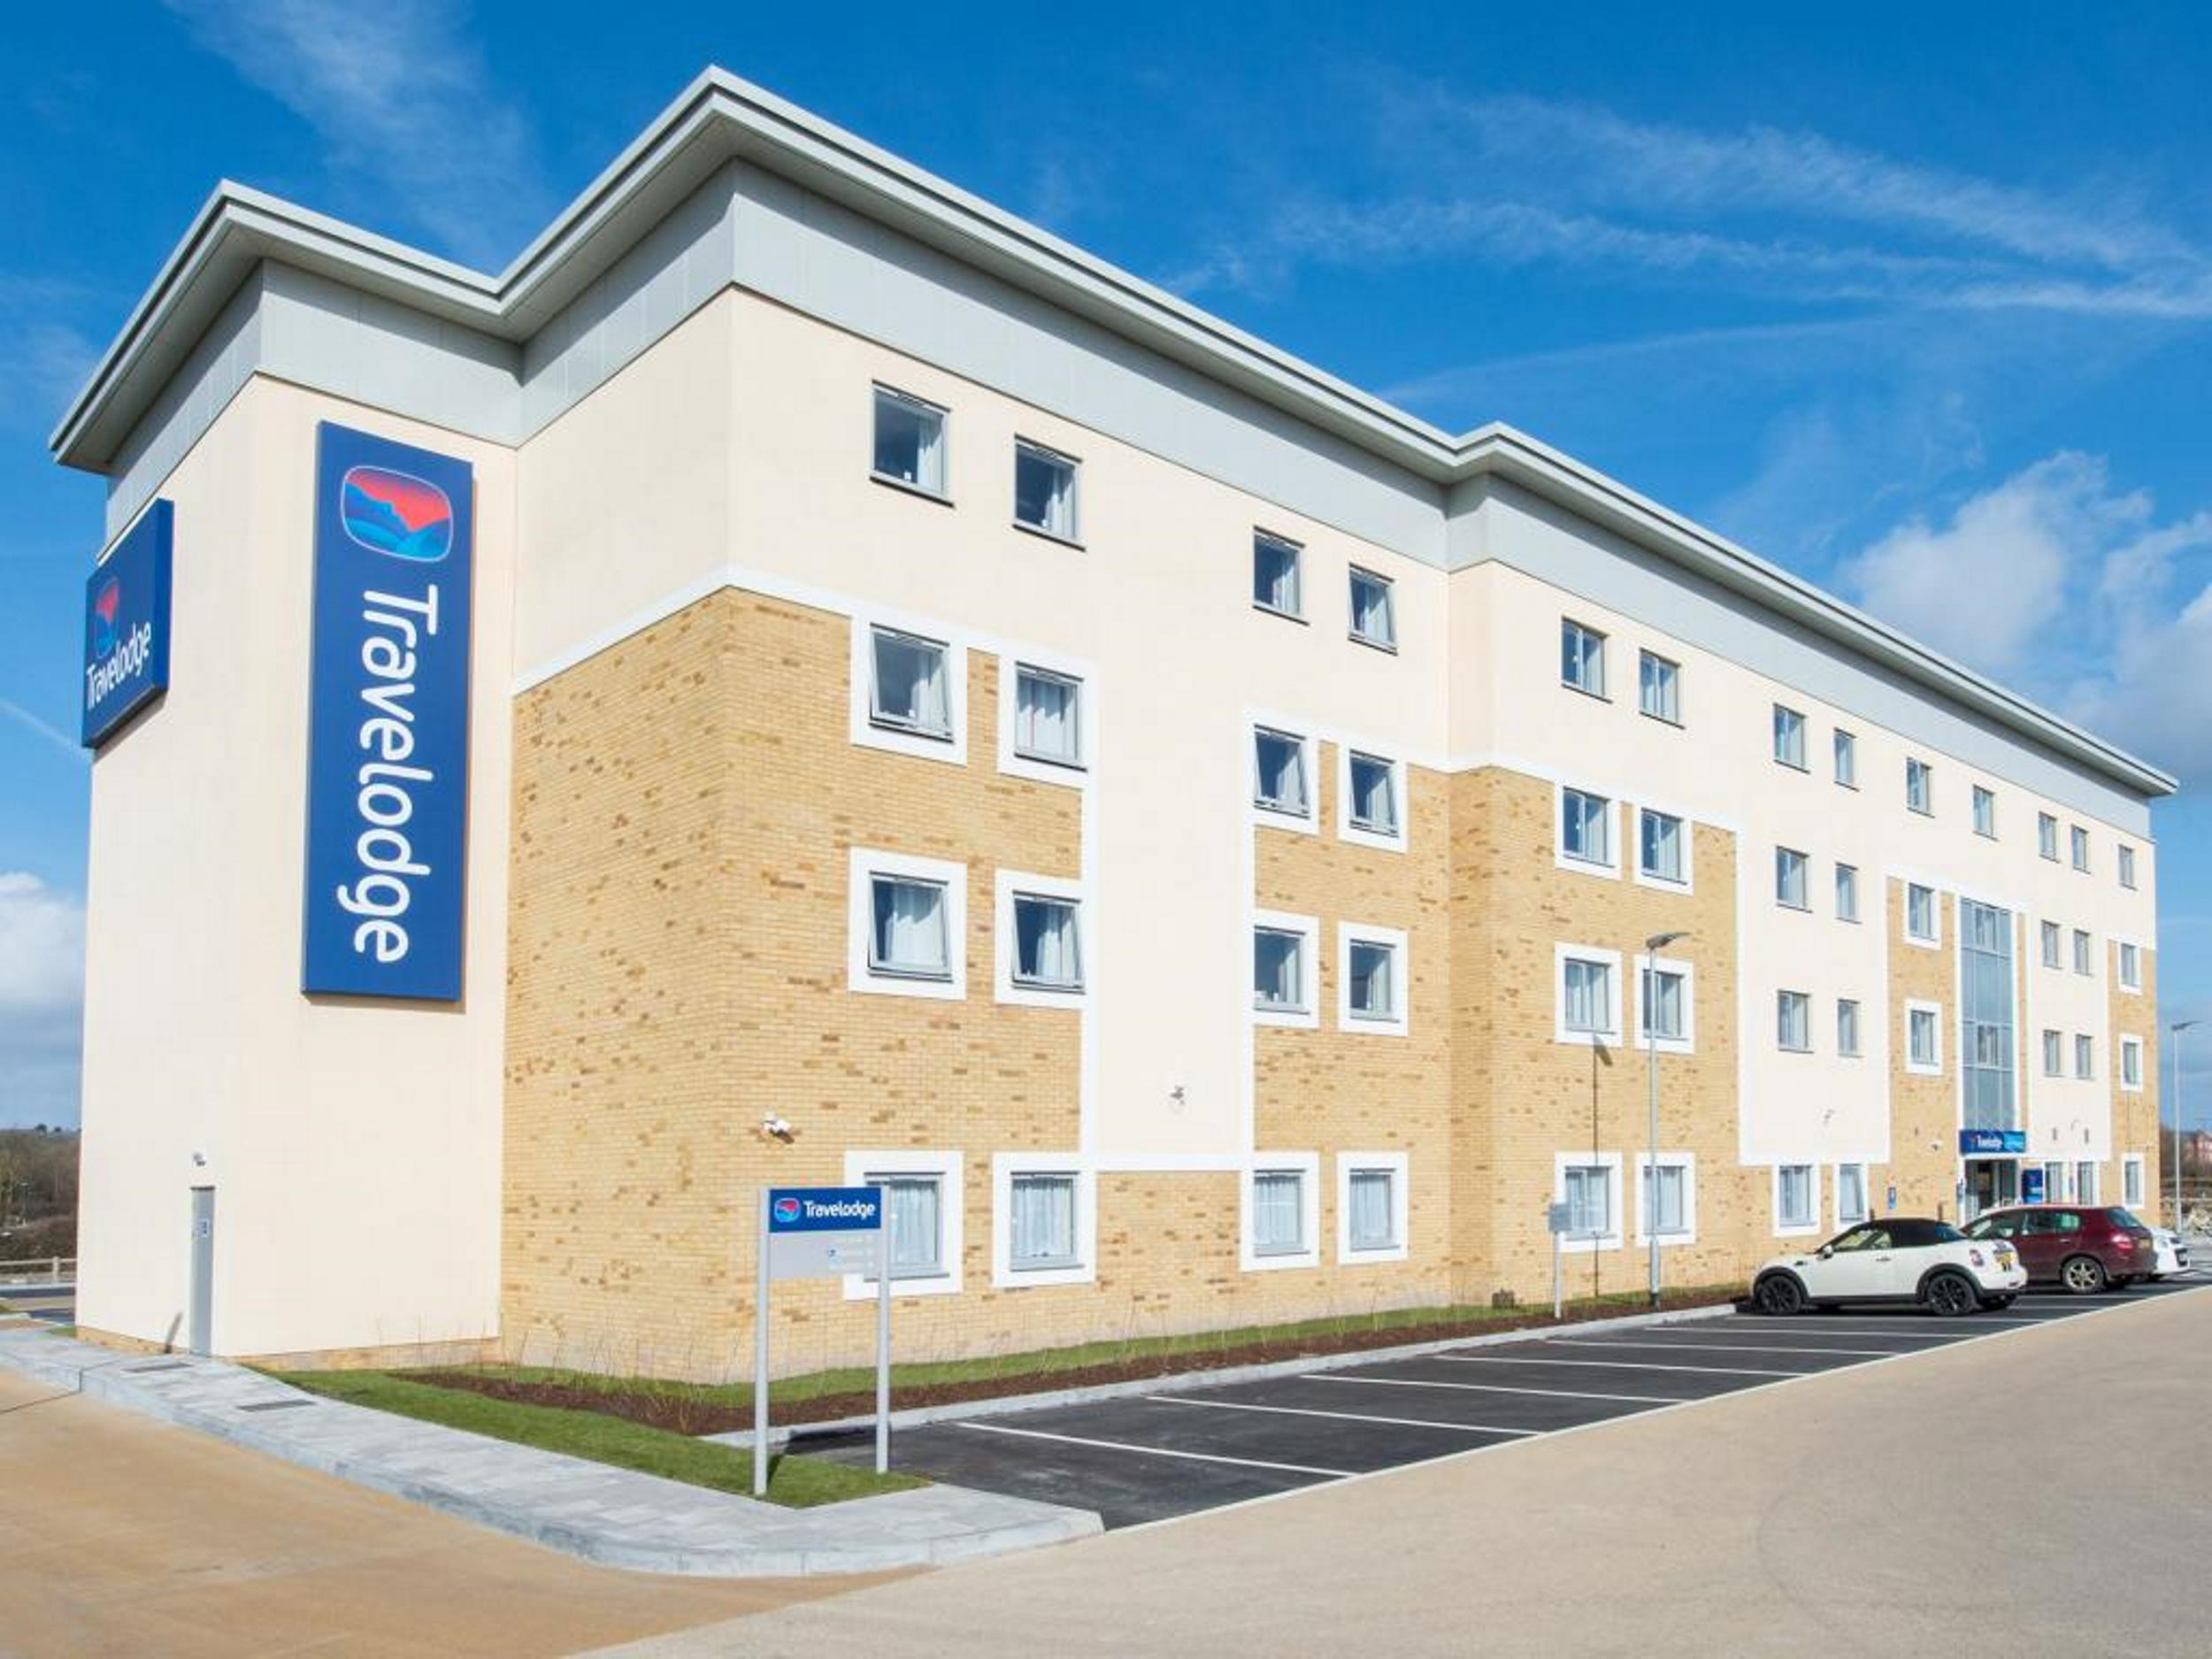 Travelodge Weston-super-Mare, Kent